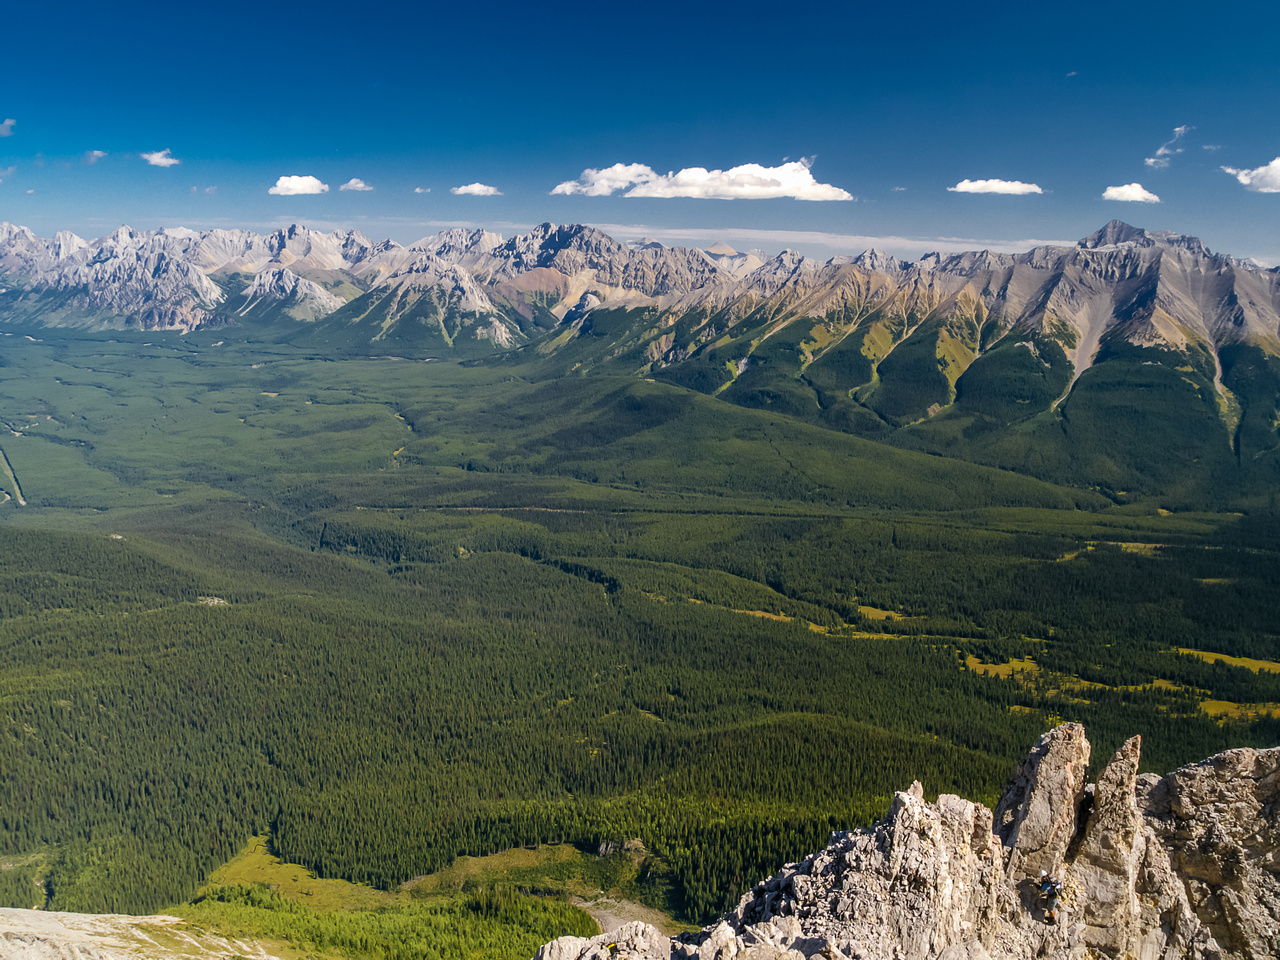 Looking over the crux to the Opal, Highwood and Elk Ranges.